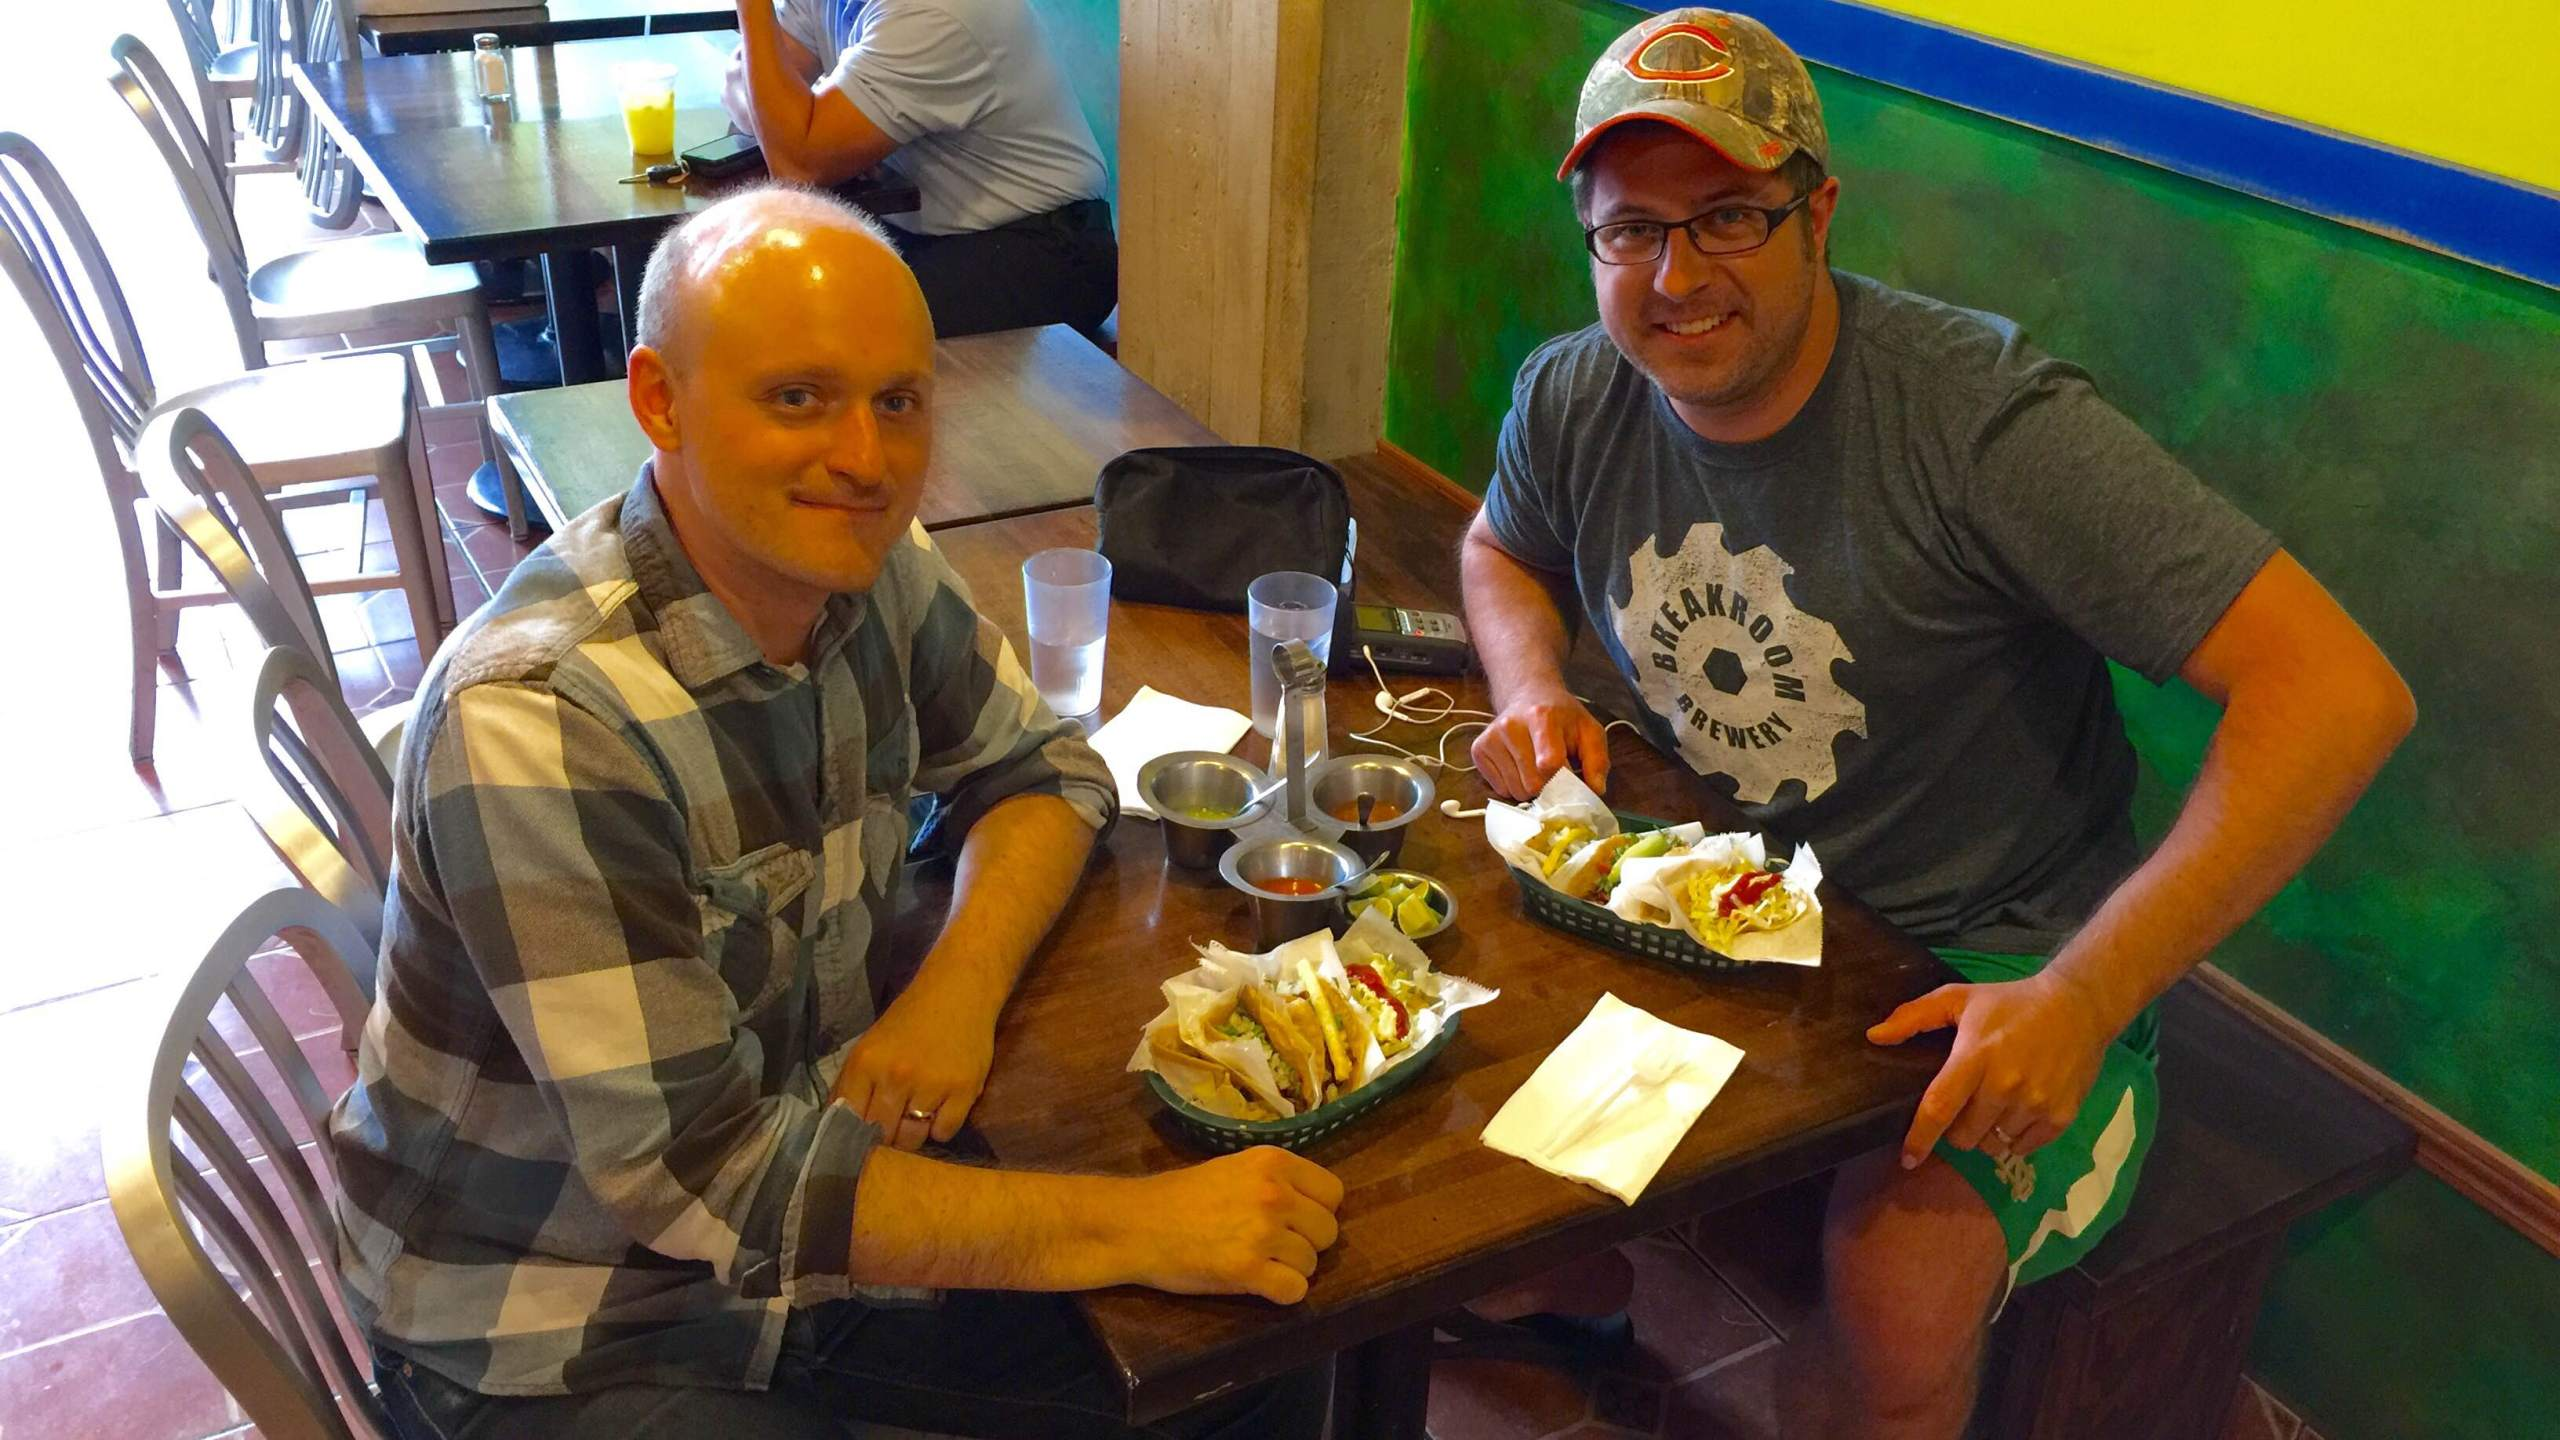 Chicago Tribune writer Nick Kindelsperger and OTL host Mike Stephen talk tacos at La Lagartija Taqueria. #mikelovestacos